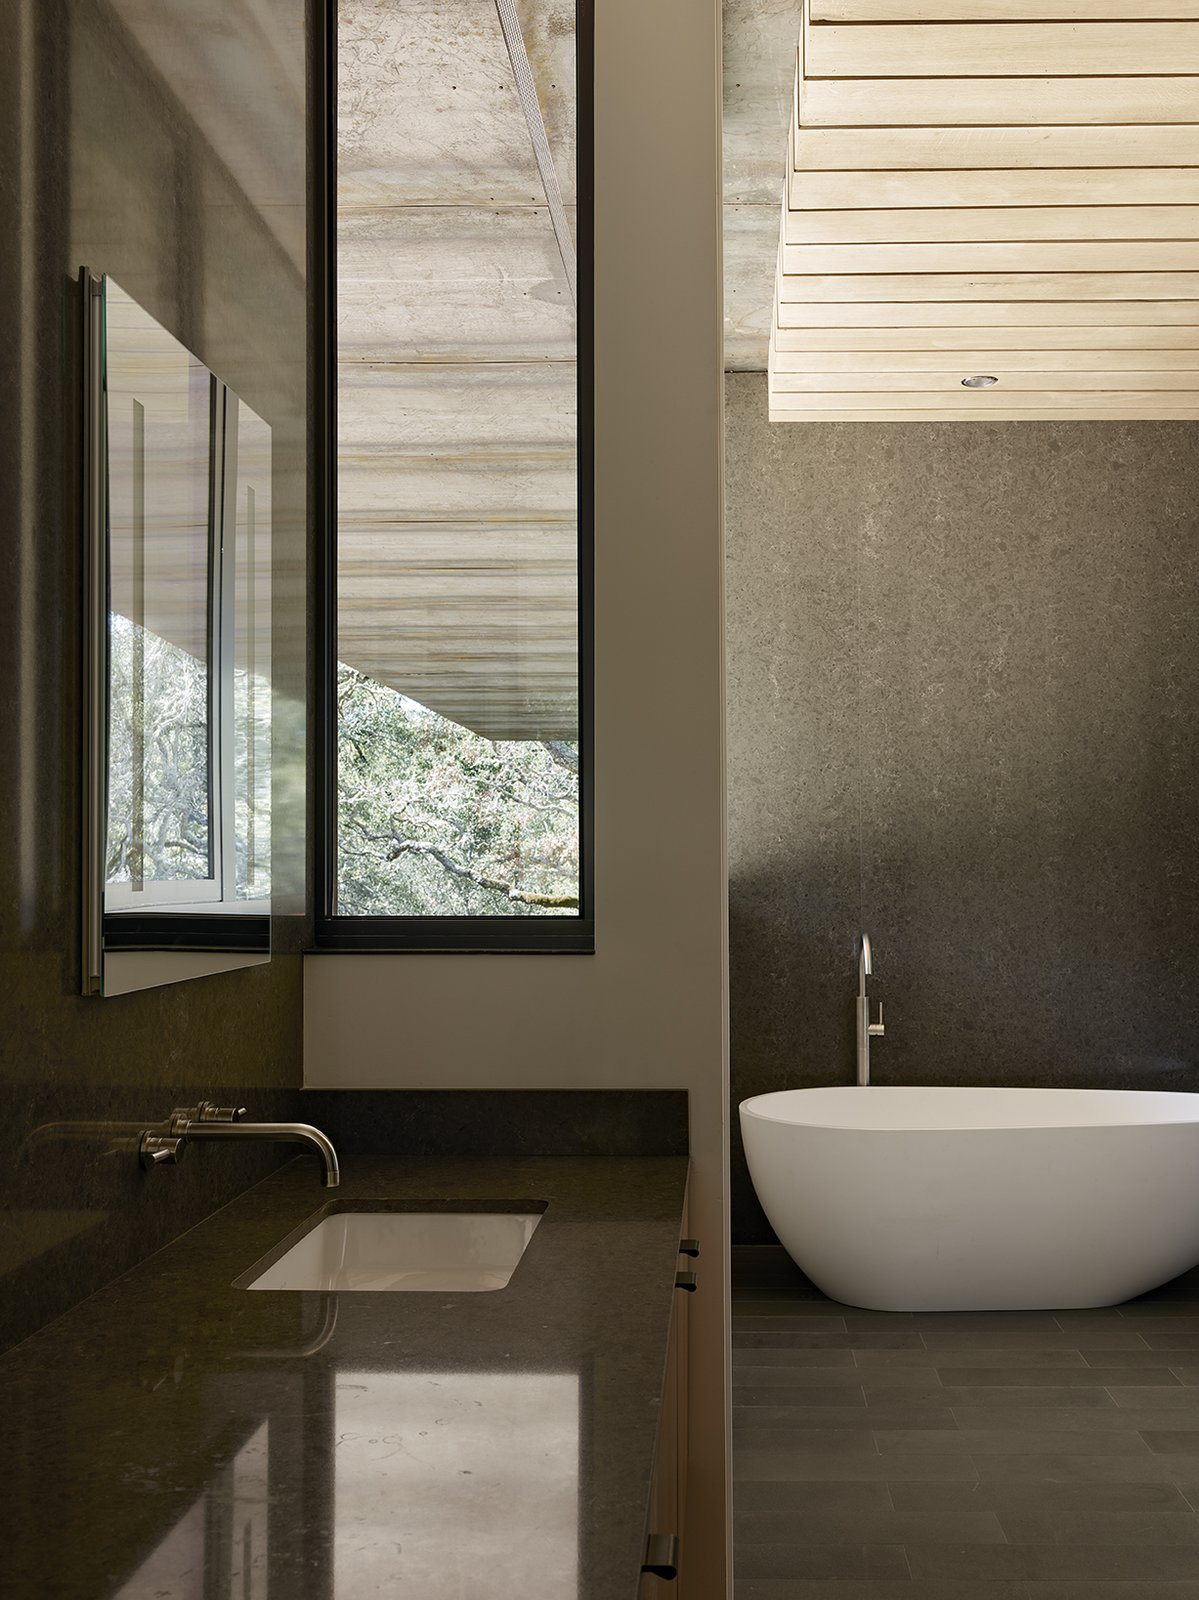 In the master bathroom, a tub and sink from ADM join Cifial fixtures. Tagged: Bath Room, Concrete Wall, Granite Counter, Undermount Sink, Freestanding Tub, and Recessed Lighting.  Photo 12 of 14 in Nature Drove the Design of This Sculptural, Cor-Ten Steel House in Northern California